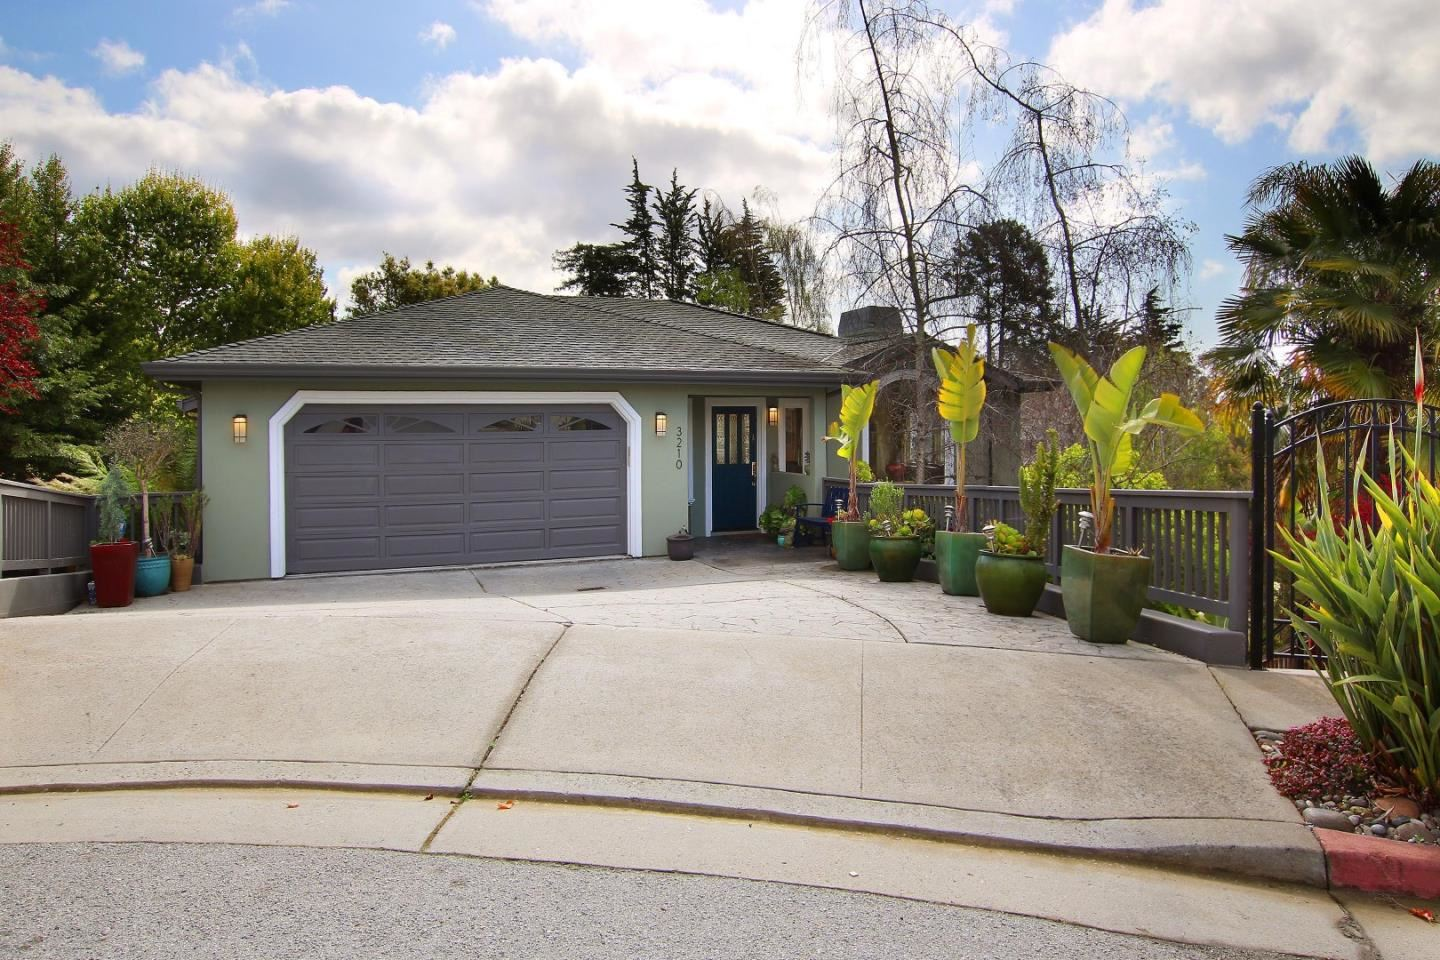 3210 Corte Cabrillo, Aptos, CA 95003 - #: ML81788804